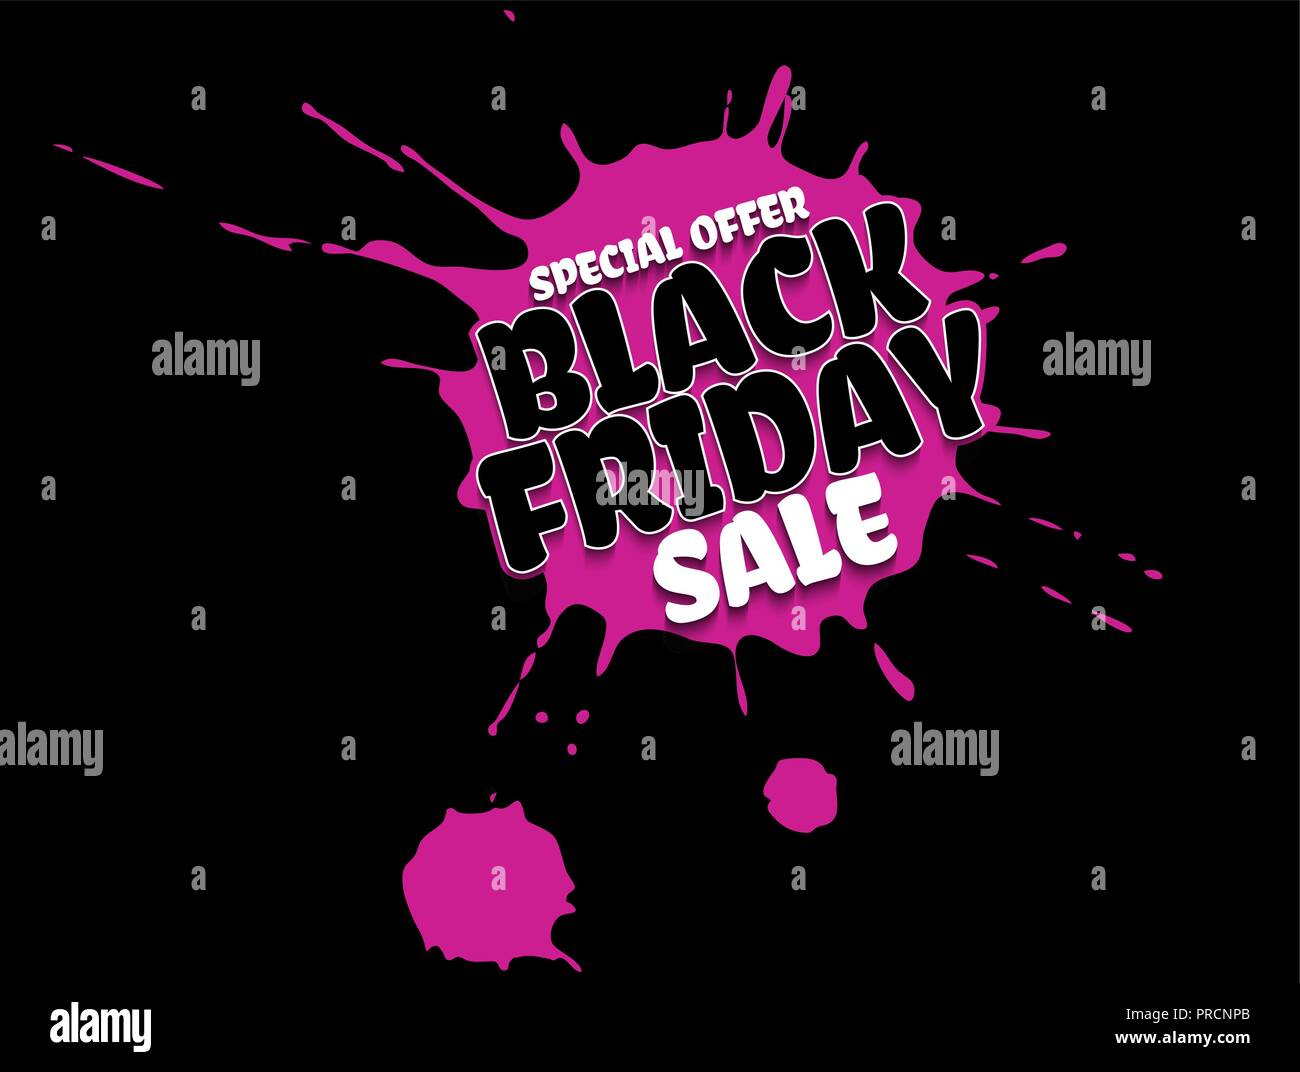 448b6db8119 Black Friday Sale grunge poster. White special offer text banner with  grunge pink ink drops isolated on black background. Vector illustration